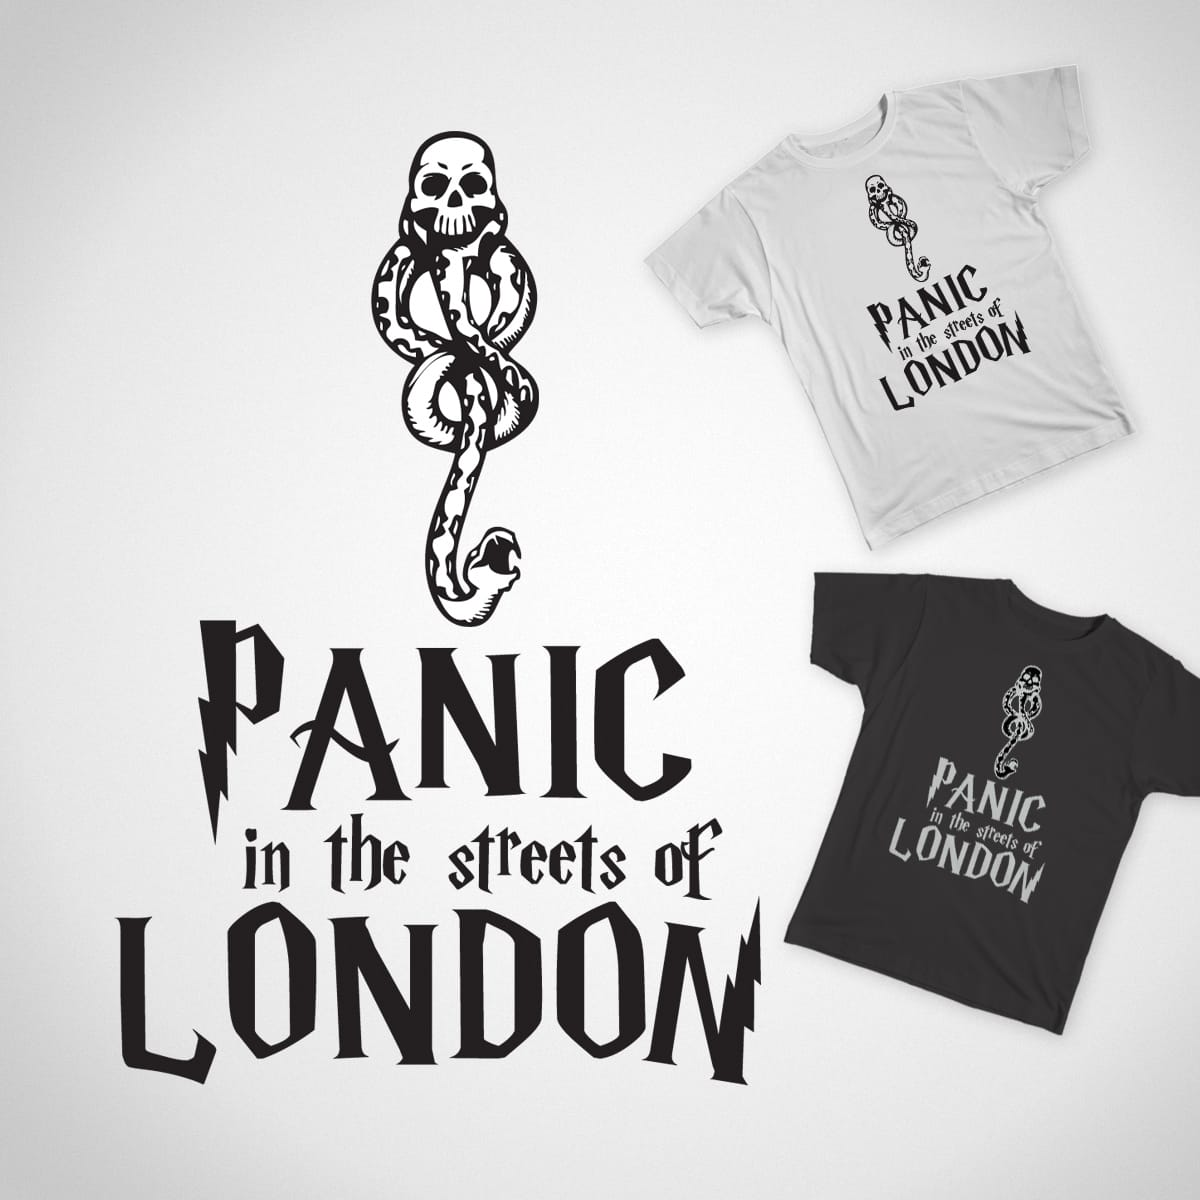 Panic in the streets by boset795b10ed00bd4d77 on Threadless